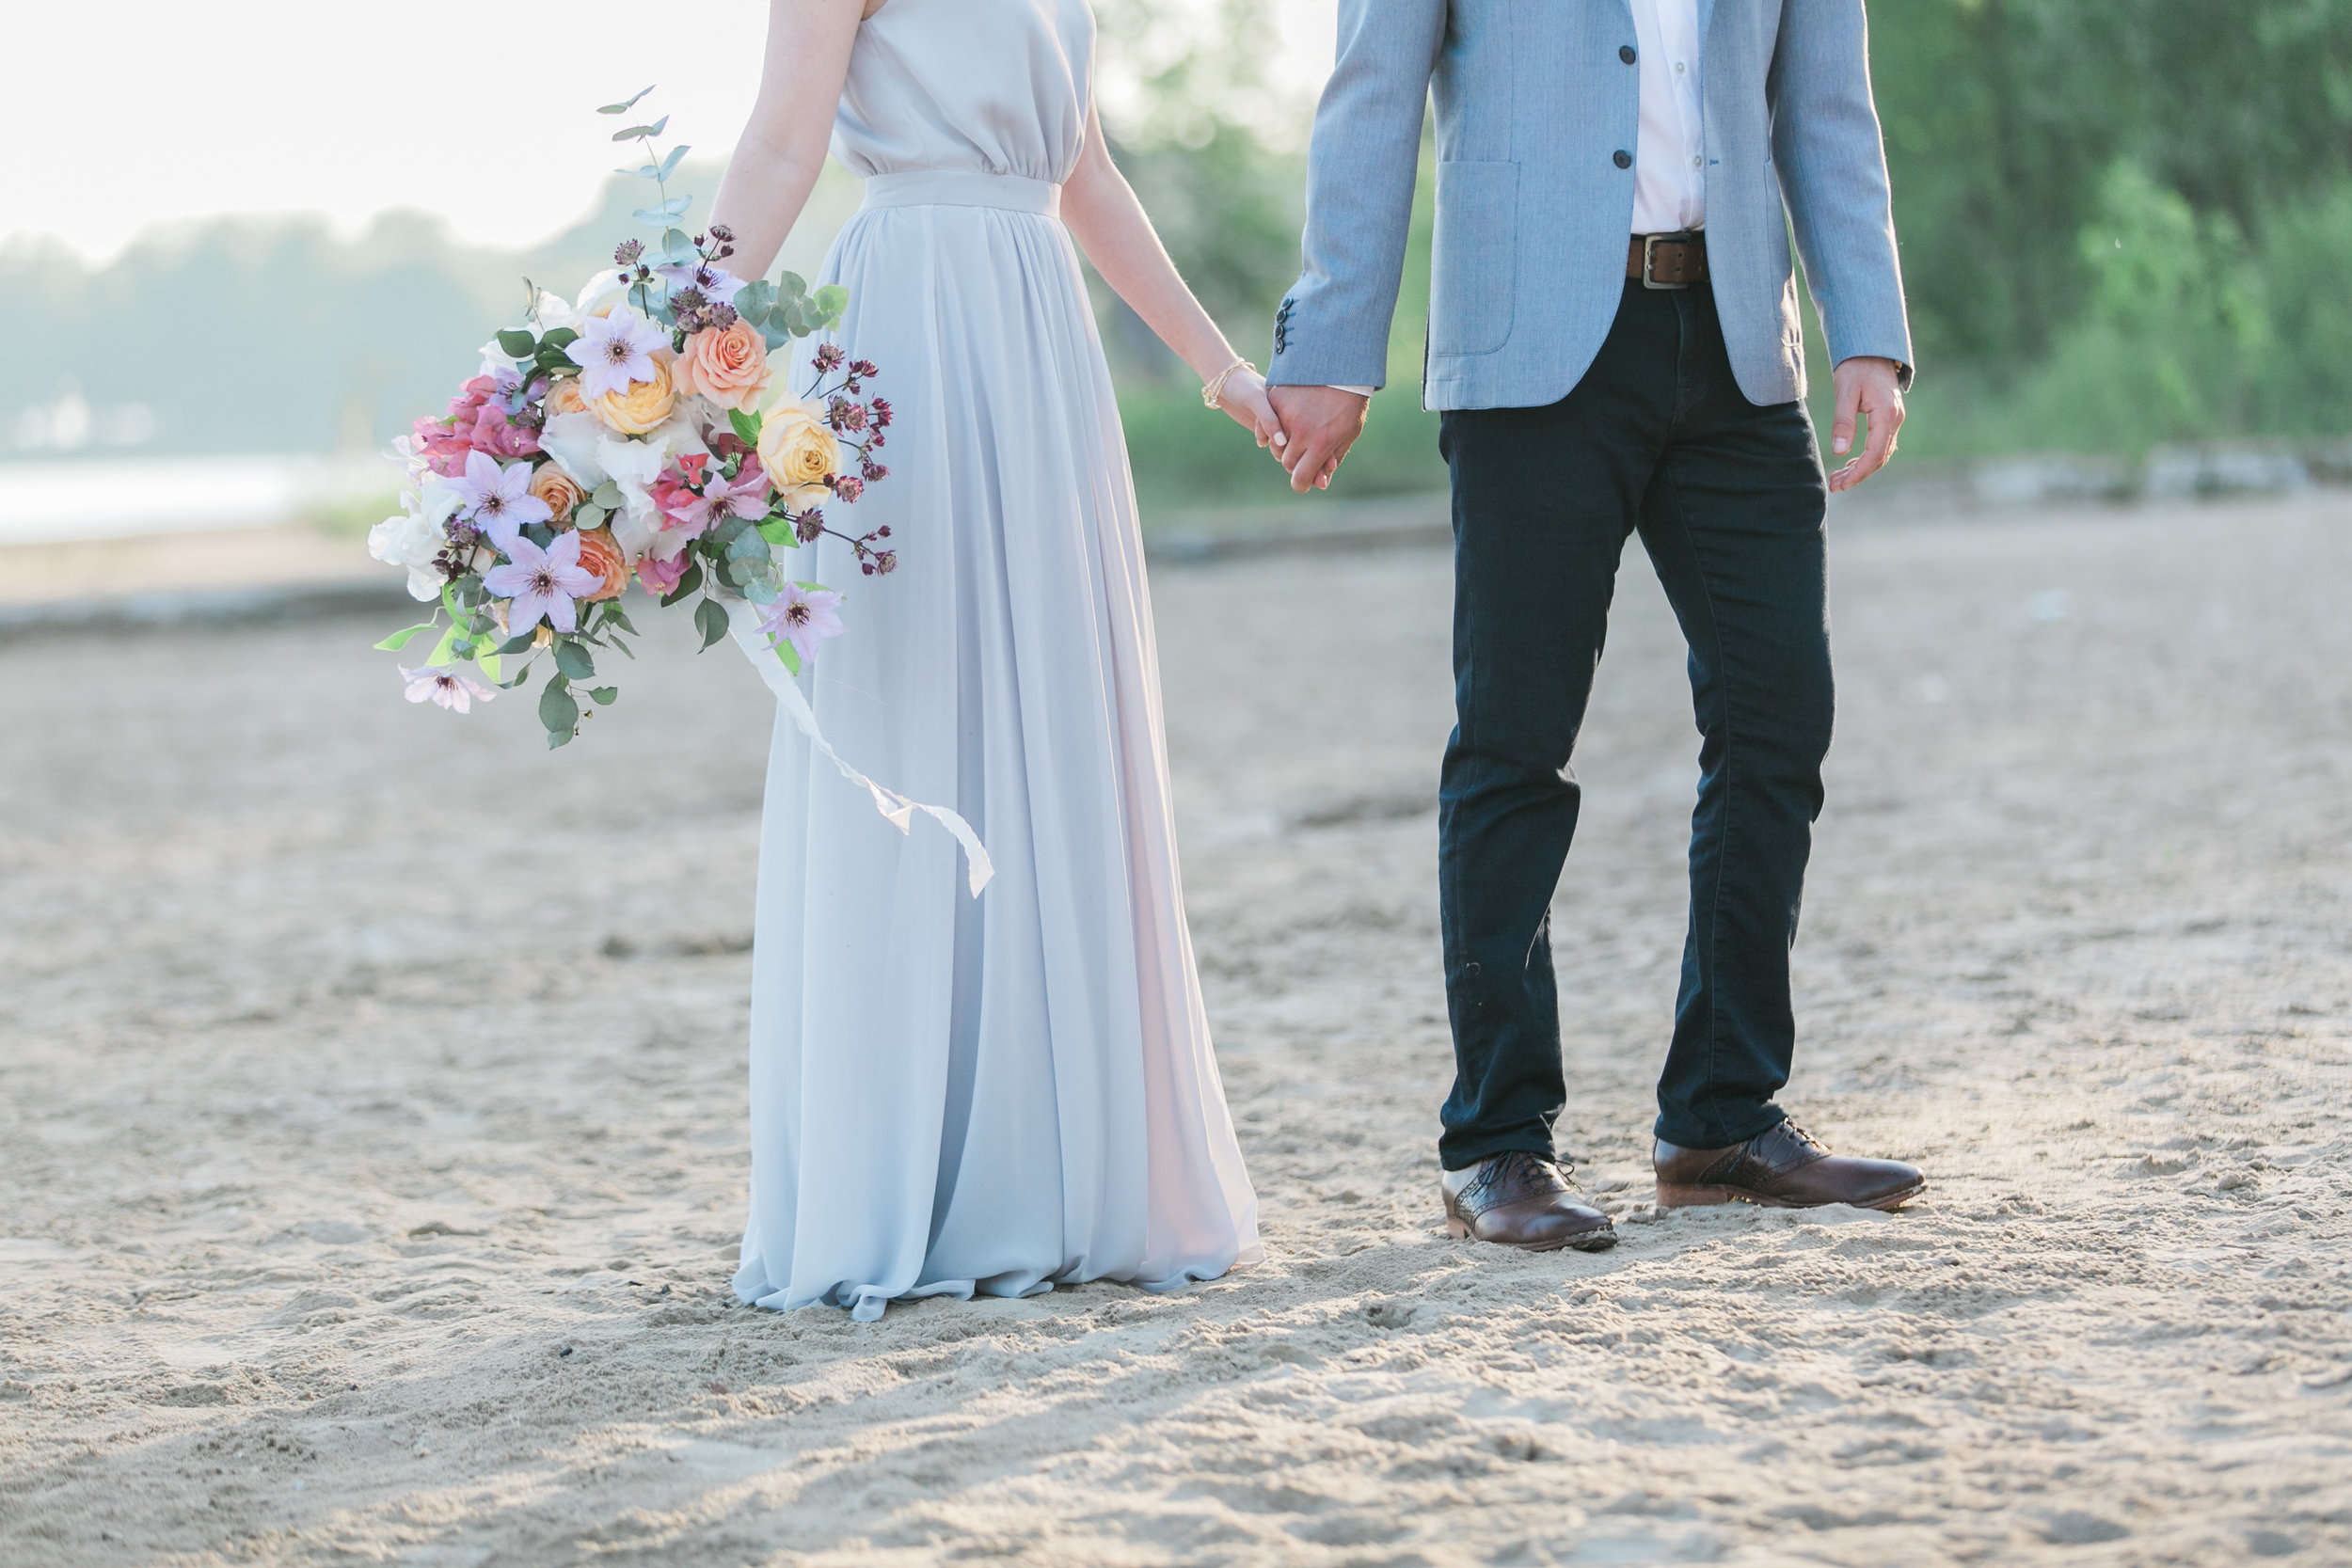 amanda cowley events niagara wedding planner beach engagement session sunset romantic